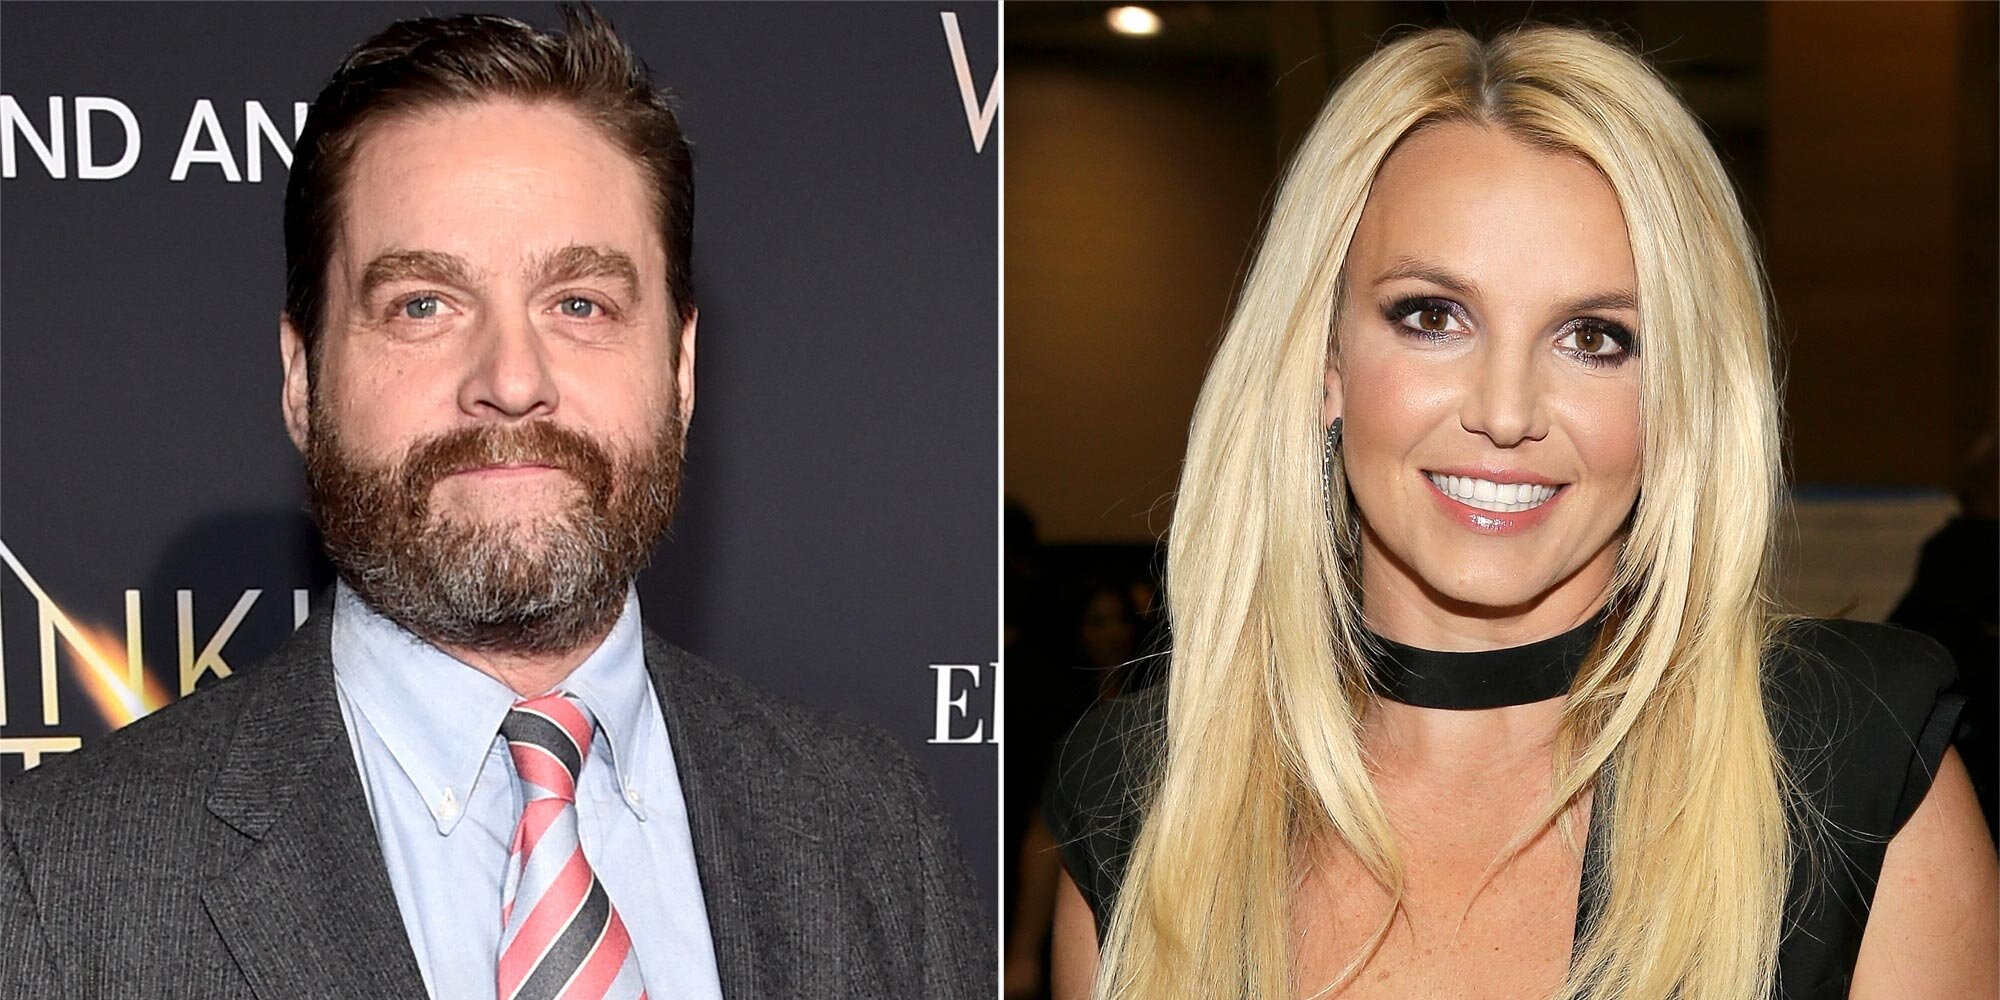 Zach Galifianakis reveals his failed SNL ideas for Britney Spears - Entertainment Weekly News